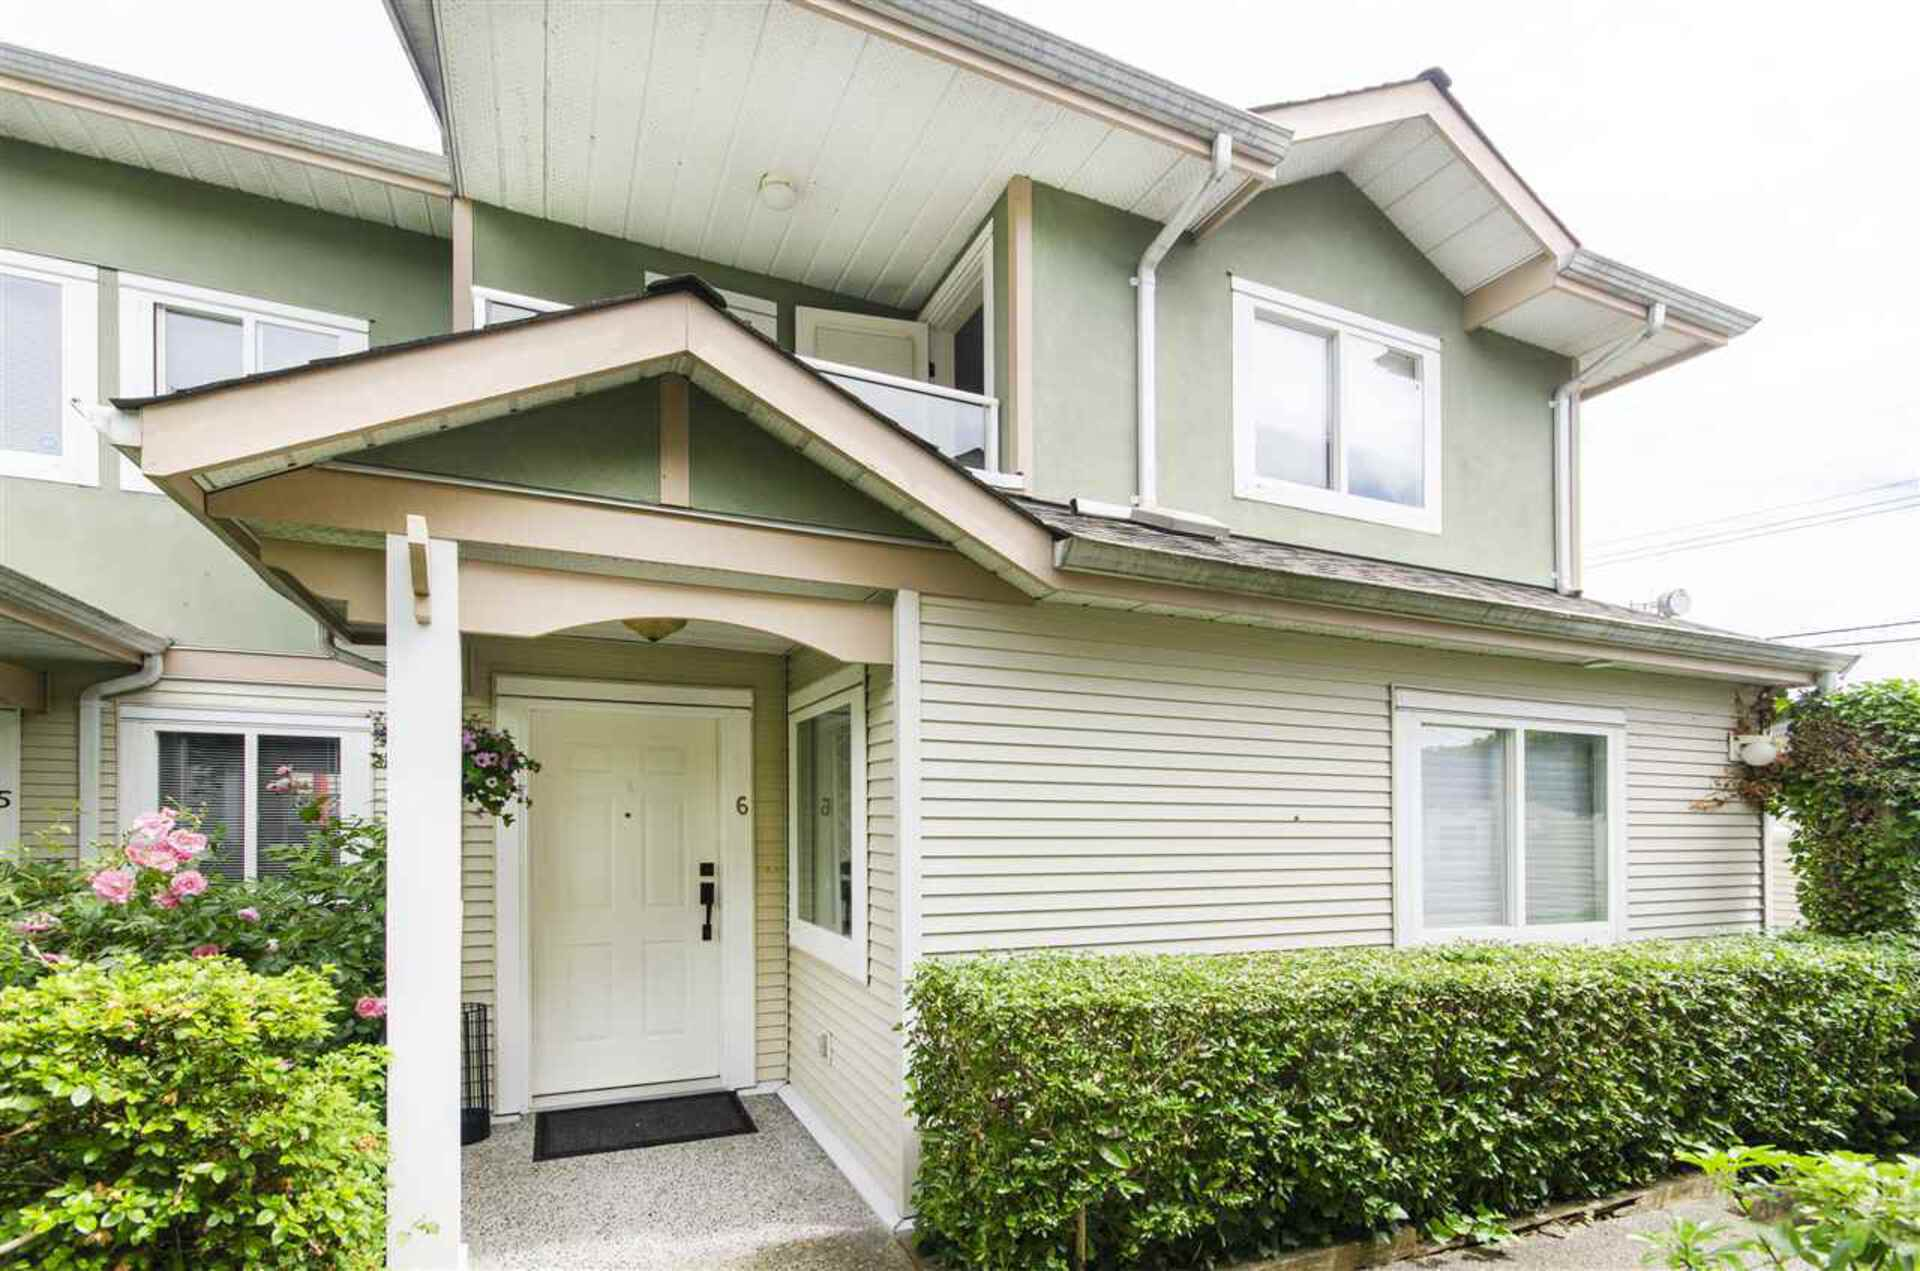 1233-w-16th-street-norgate-north-vancouver-25 at 6 - 1233 W 16th Street, Norgate, North Vancouver